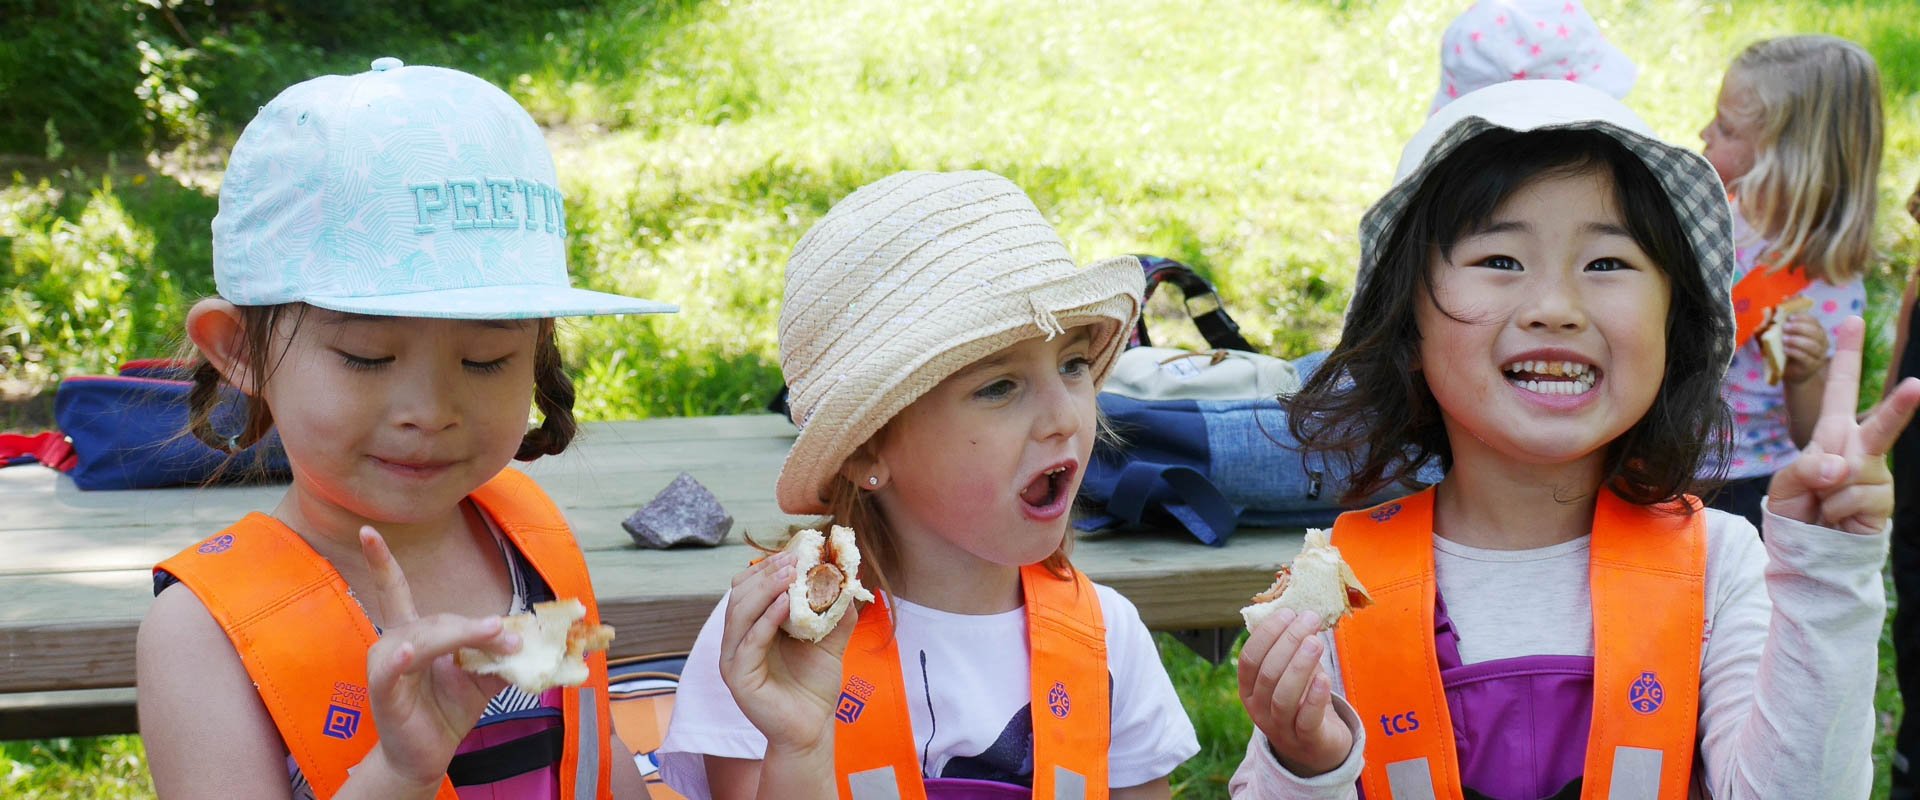 primary school students eating together outdoors, international school